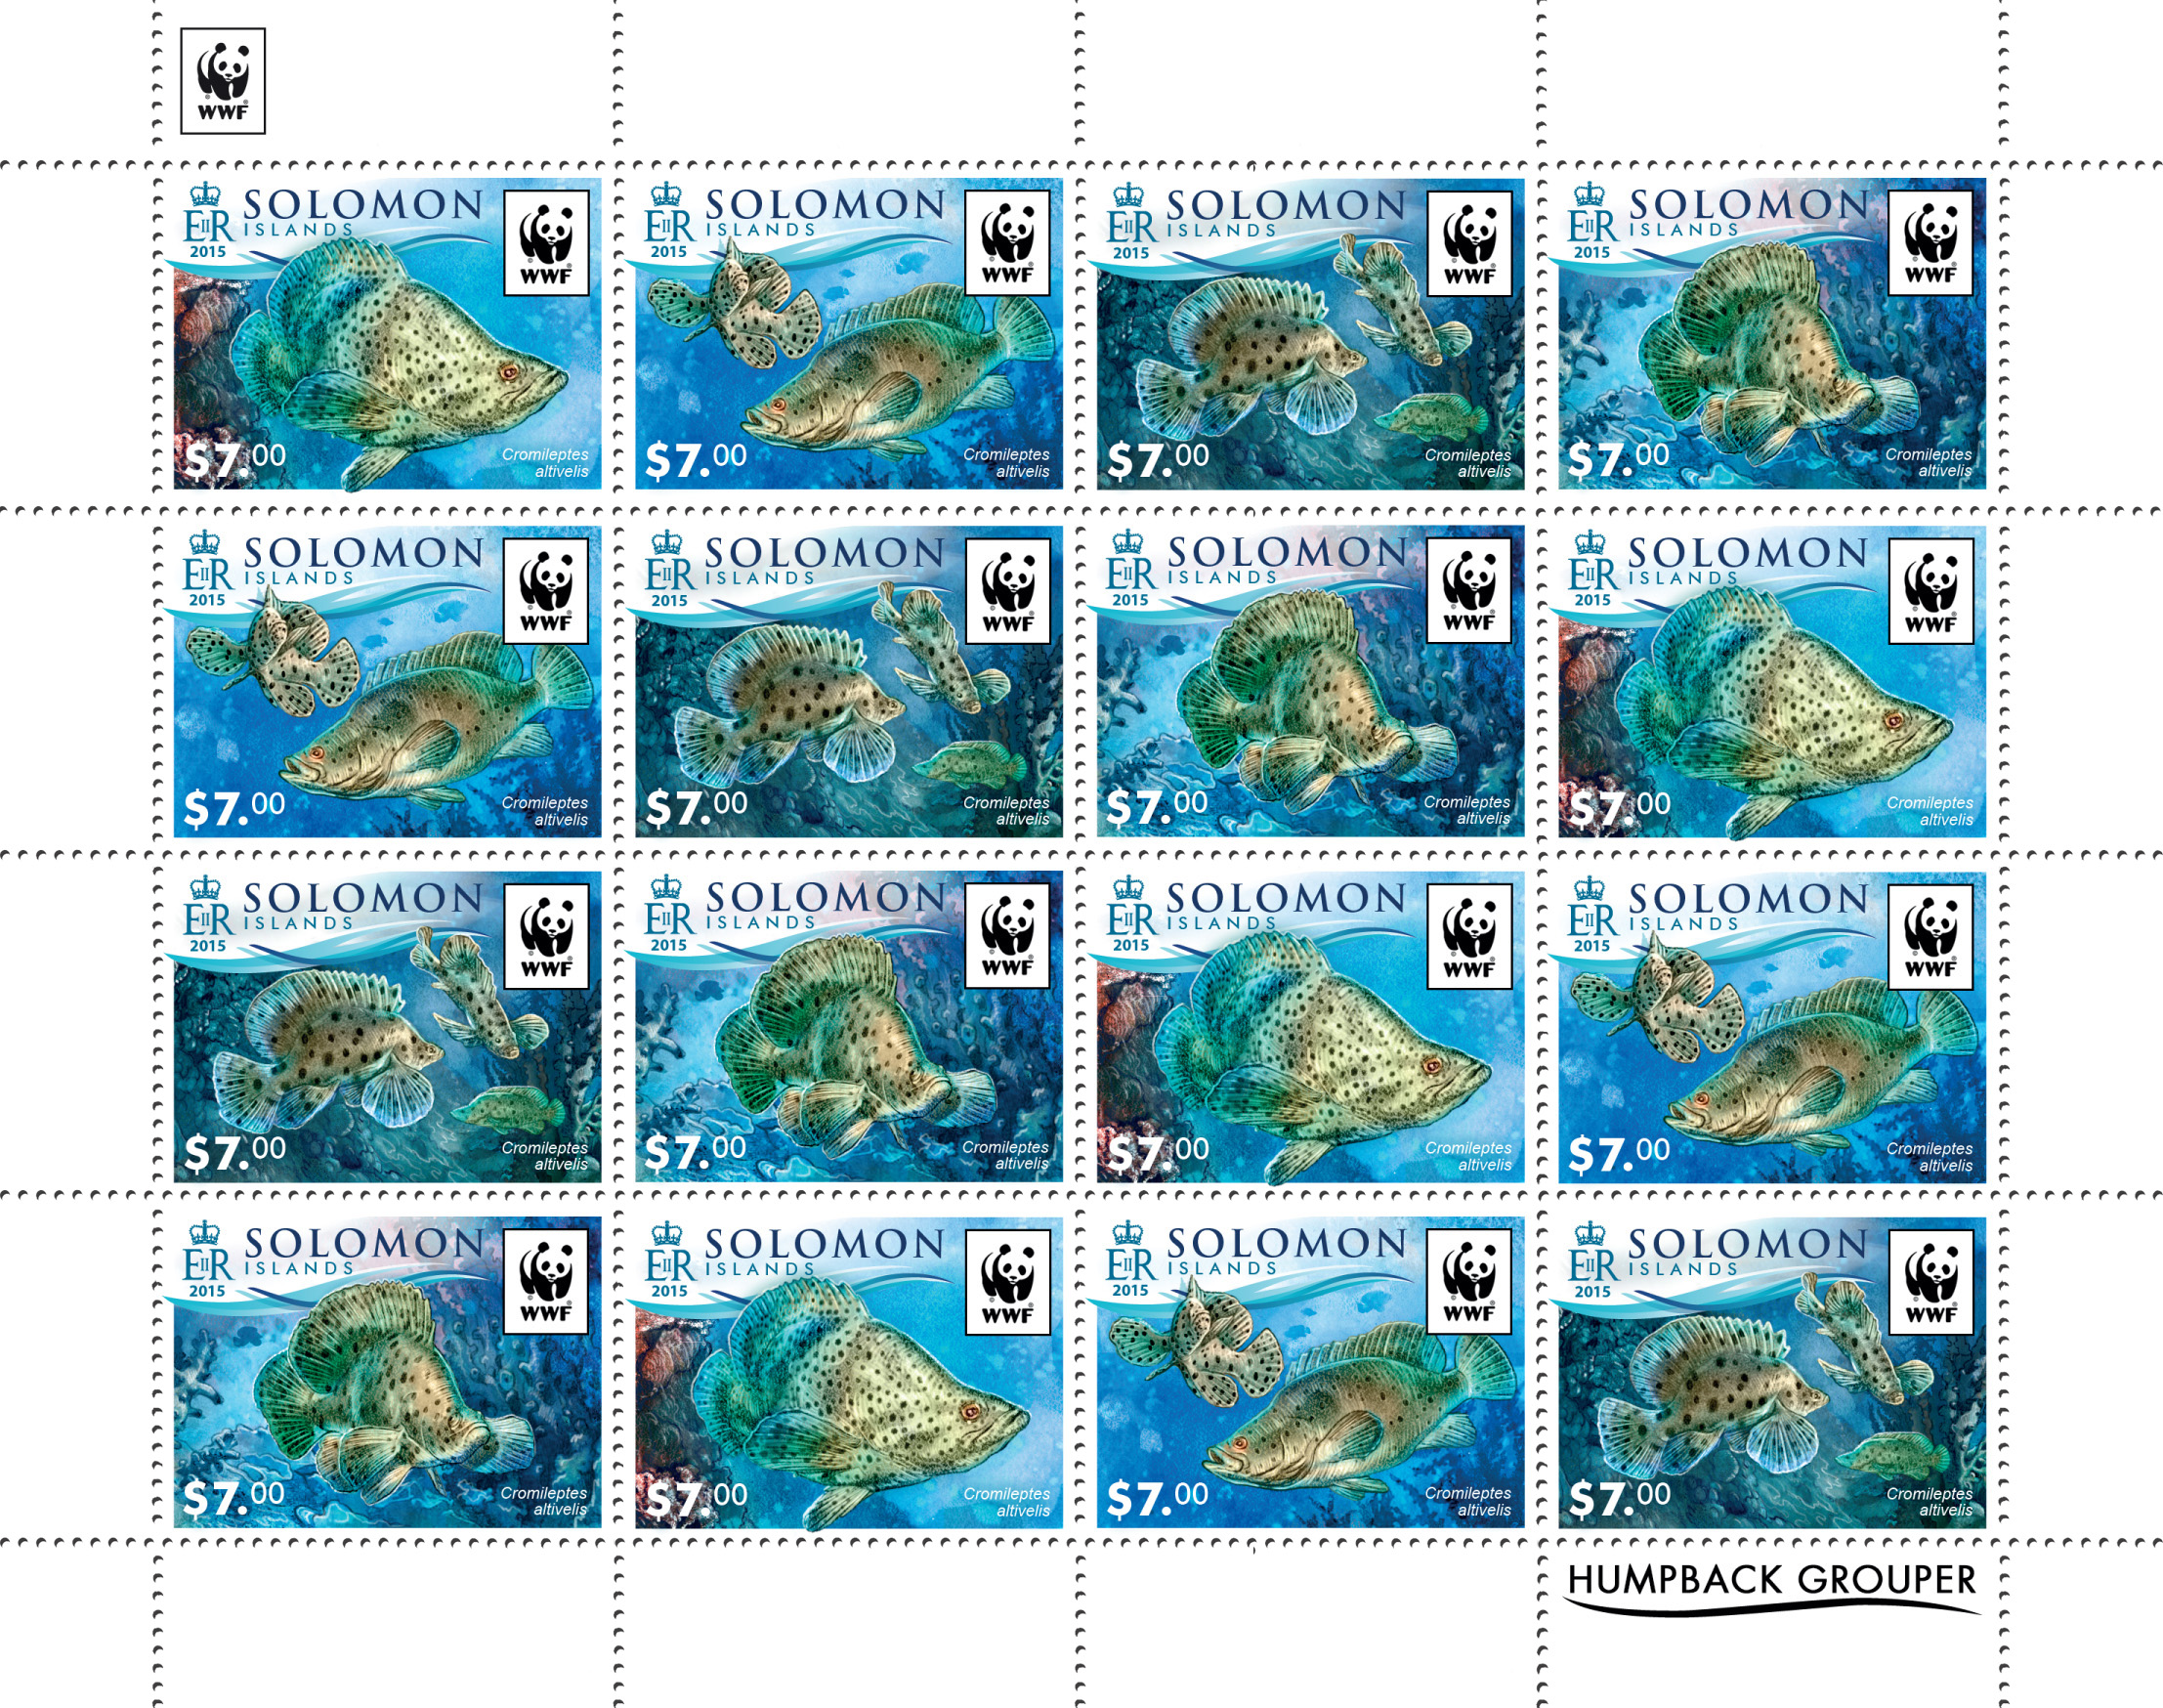 WWF – Fish (4 sets) - Issue of Solomon islands postage stamps